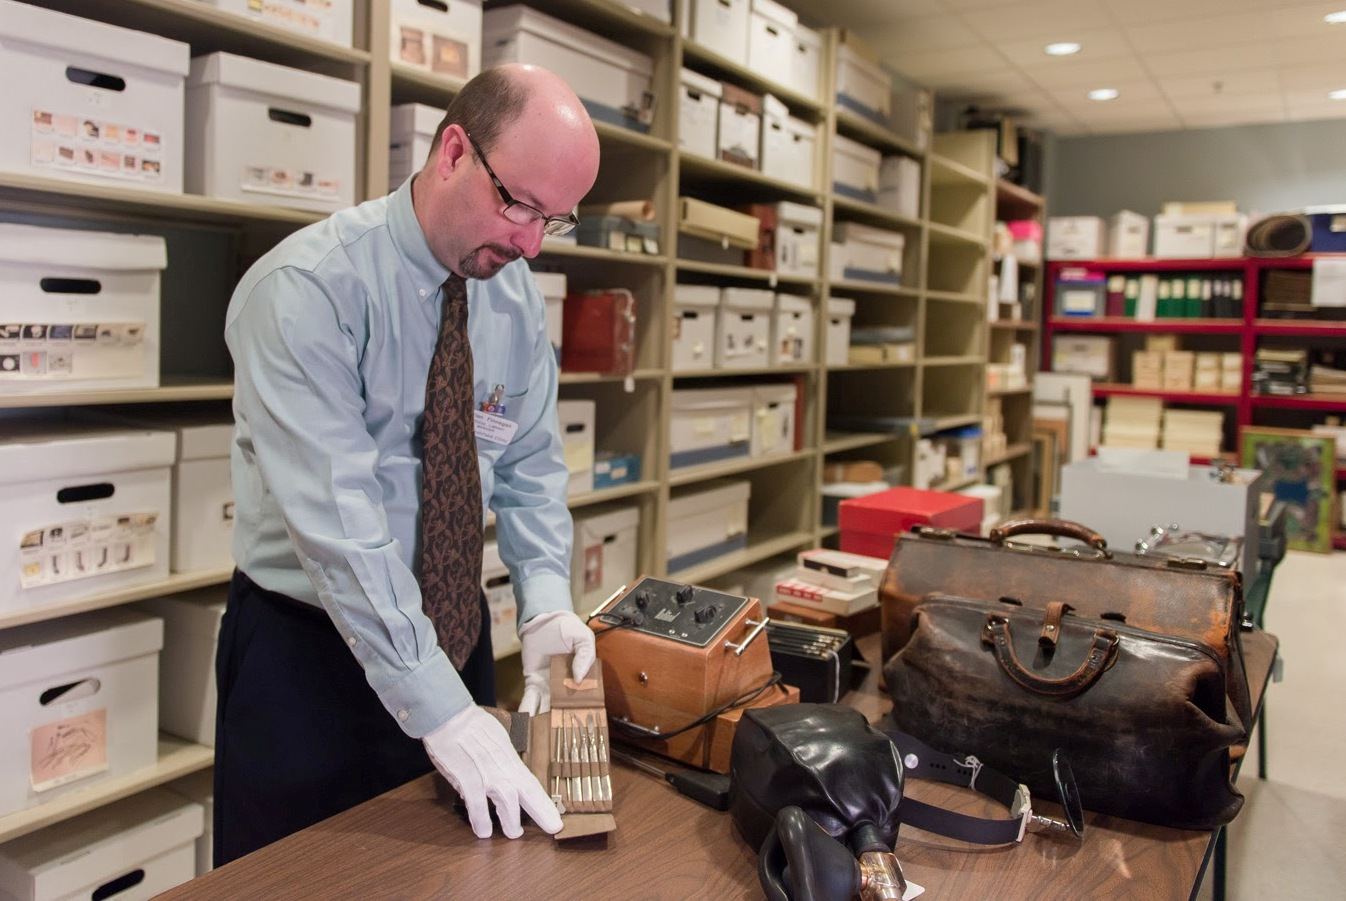 Brian Finnegan, manager of the George E. Magnin Medical Library and History Archive at Marshfield Clinic, displays medical equipment used in years past by clinic physicians.